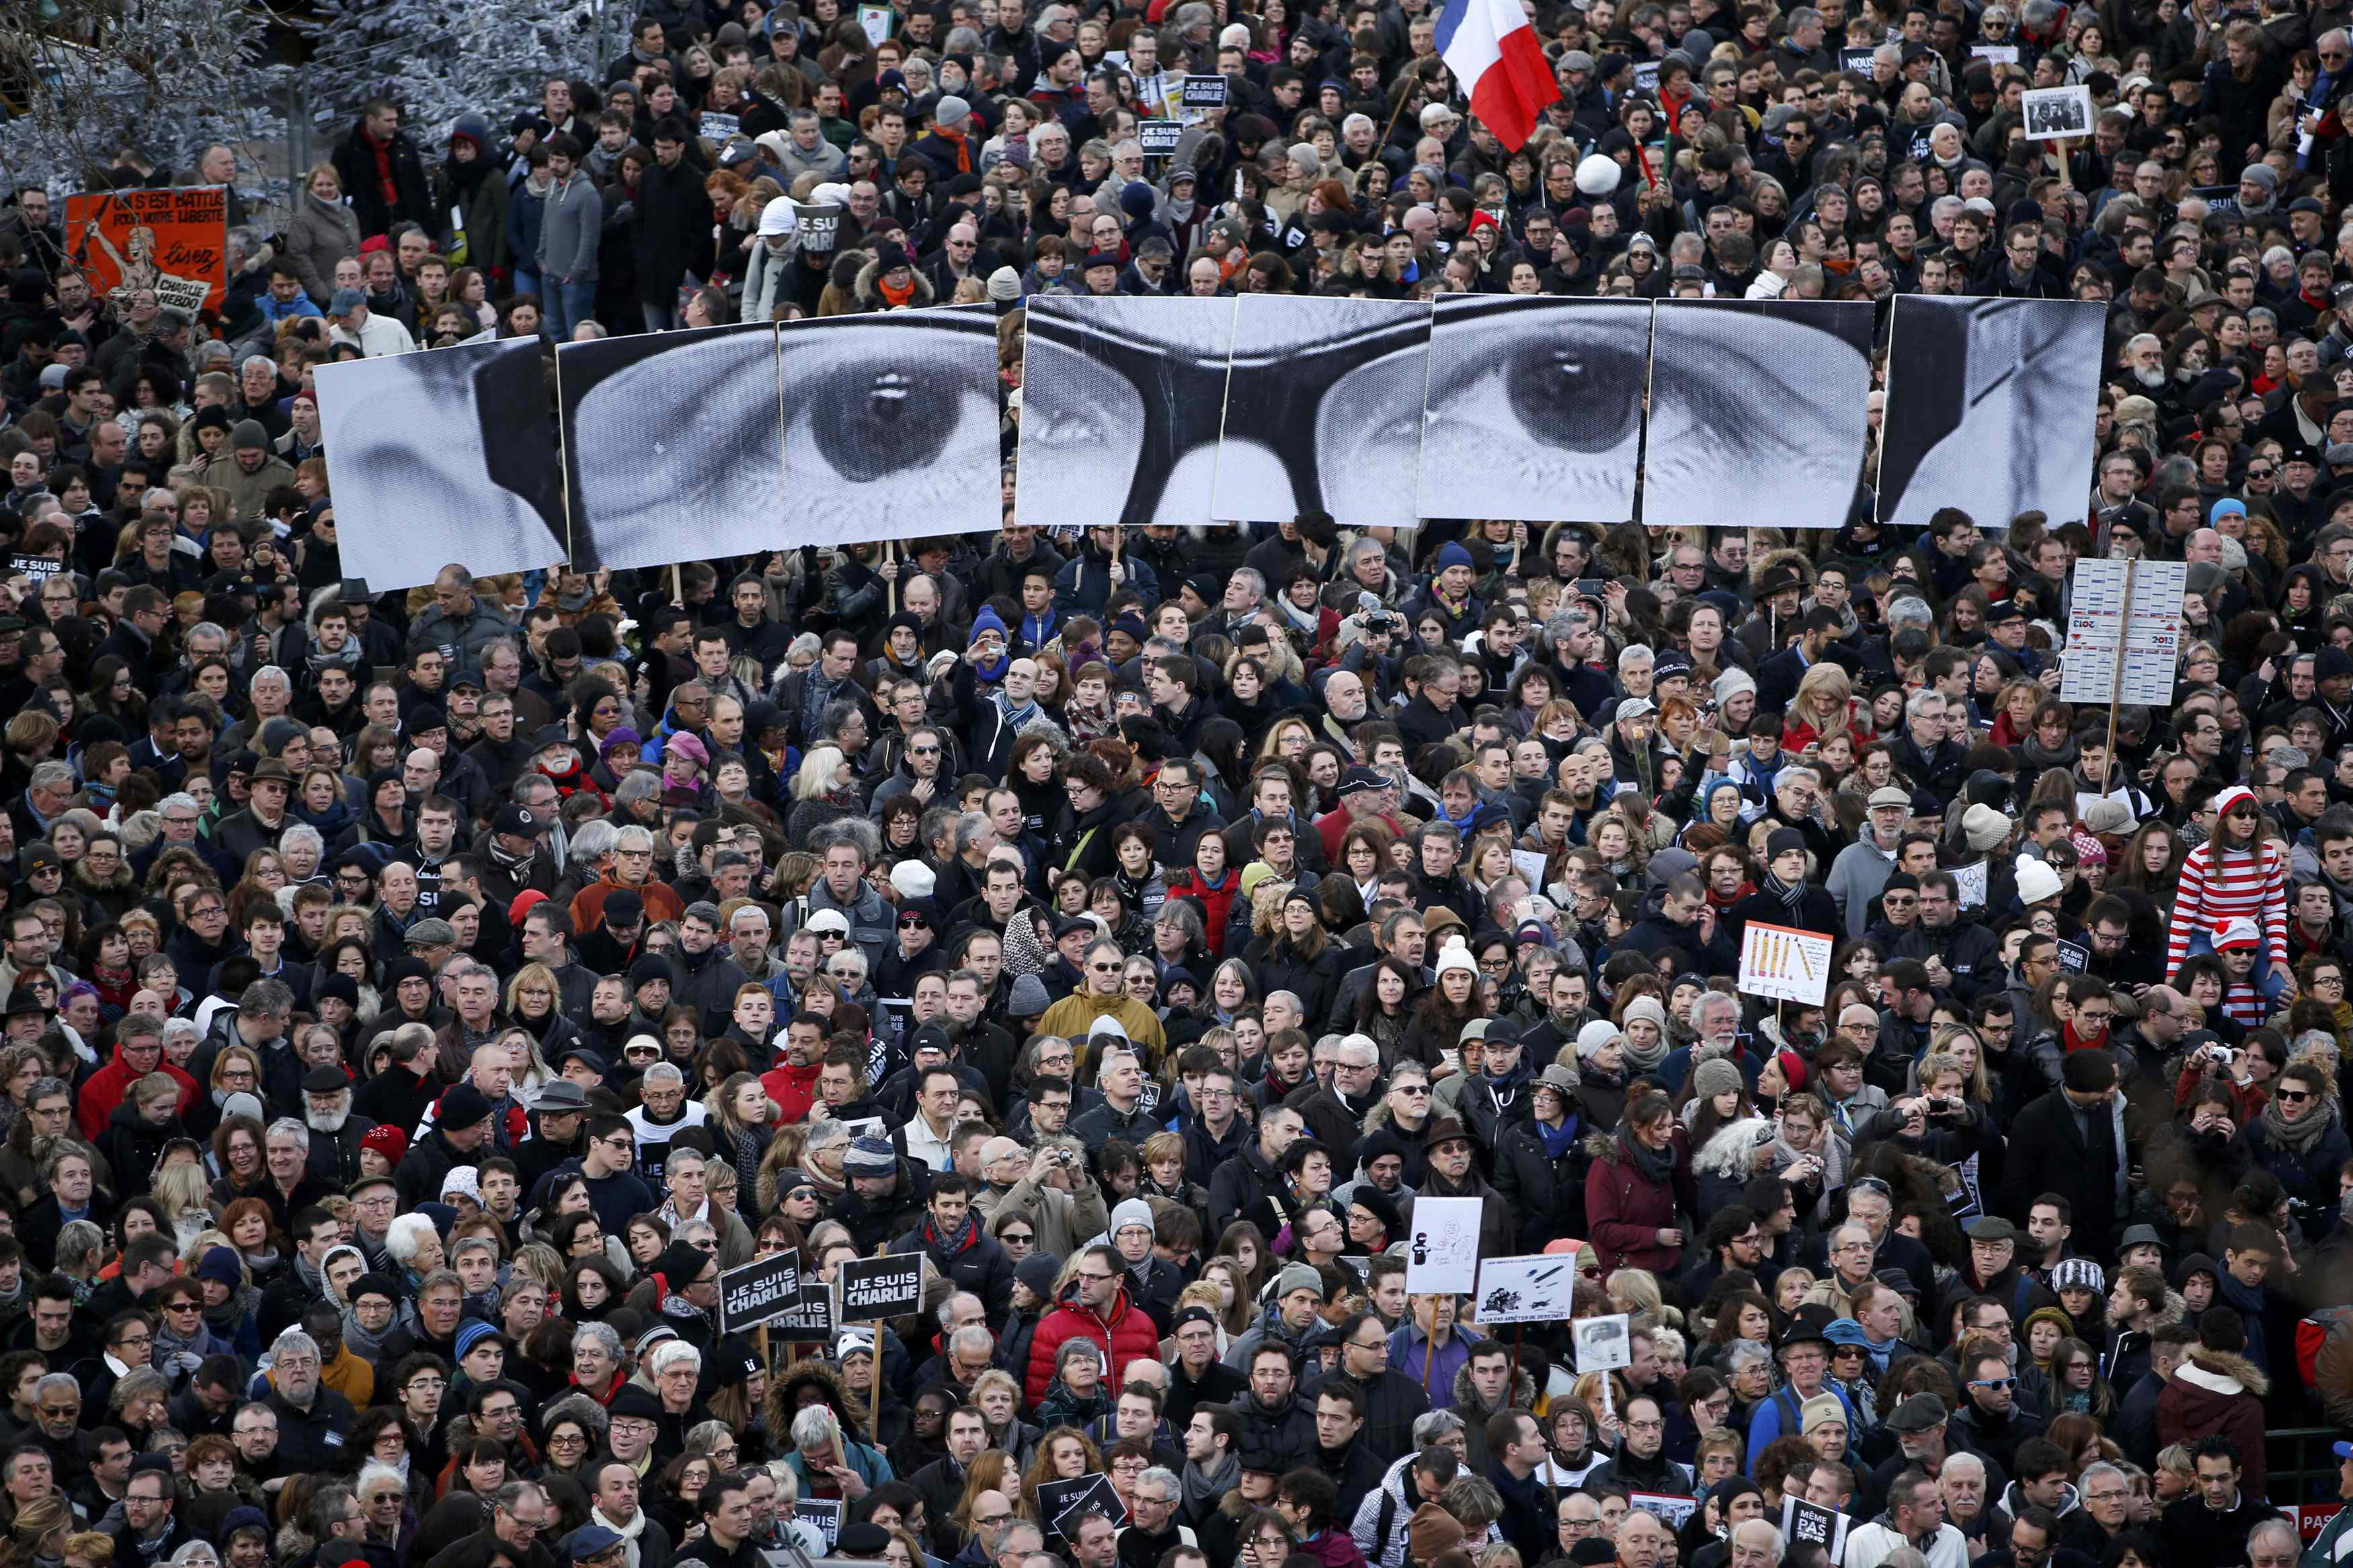 "REFILE - ADDITIONAL CAPTION INFORMATION People hold panels to create the eyes of late Charlie Hebdo editor Stephane Charbonnier, known as ""Charb"", as hundreds of thousands of French citizens take part in a solidarity march (Marche Republicaine) in the streets of Paris January 11, 2015. French citizens, joined by dozens of foreign leaders, among them Arab and Muslim representatives, took part in a march on Sunday in an unprecedented tribute to this week's victims following the shootings by gunmen at the offices of the satirical weekly newspaper Charlie Hebdo, the killing of a policewoman in Montrouge, and the hostage-taking at a kosher supermarket at the Porte de Vincennes. REUTERS/Yves Herman (FRANCE - Tags: CRIME LAW POLITICS CIVIL UNREST TPX IMAGES OF THE DAY SOCIETY)"